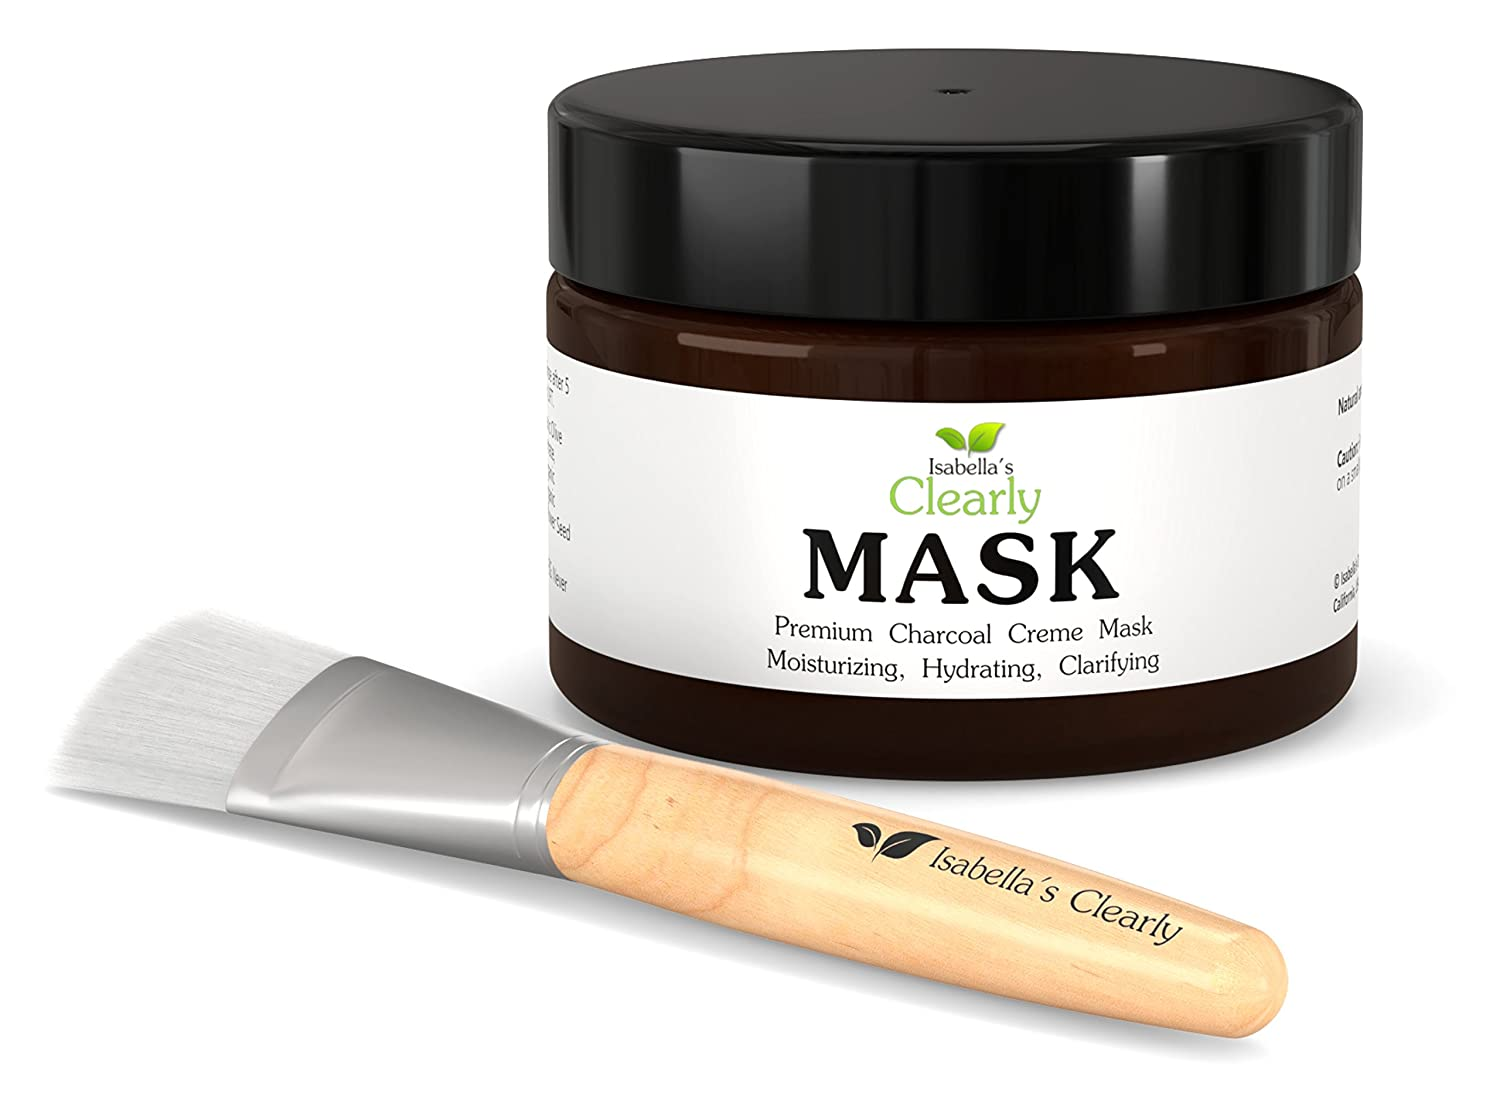 Clearly MASK Activated Charcoal Face Mask Creme Hydrates, Clarifies, and Moisturizes Dry Skin. Hyaluronic Acid, Olive, Jojoba Oils, Antioxidant Rich Rooibos, Toning DMAE, Vitamin C, B5. Natural, Organic, Vegan, with FREE mask brush. 4 Oz. Isabella' s C